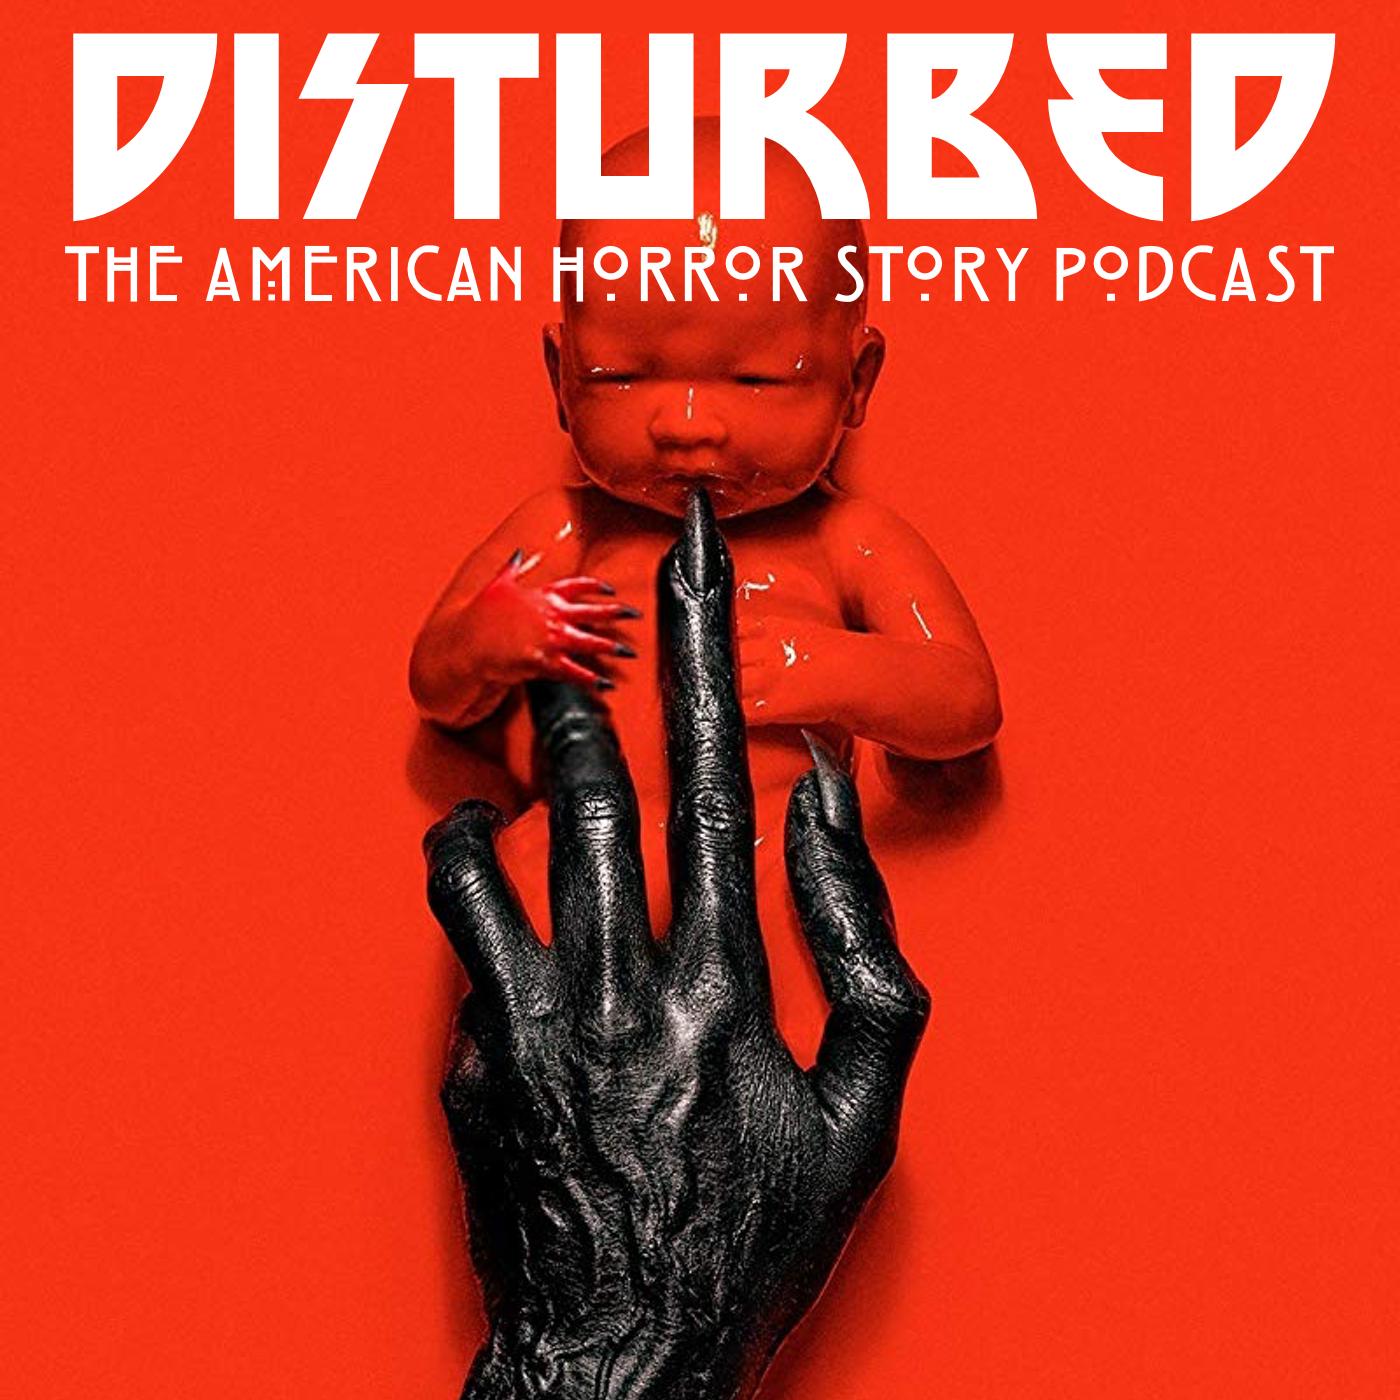 Disturbed: The American Horror Story Podcast show art